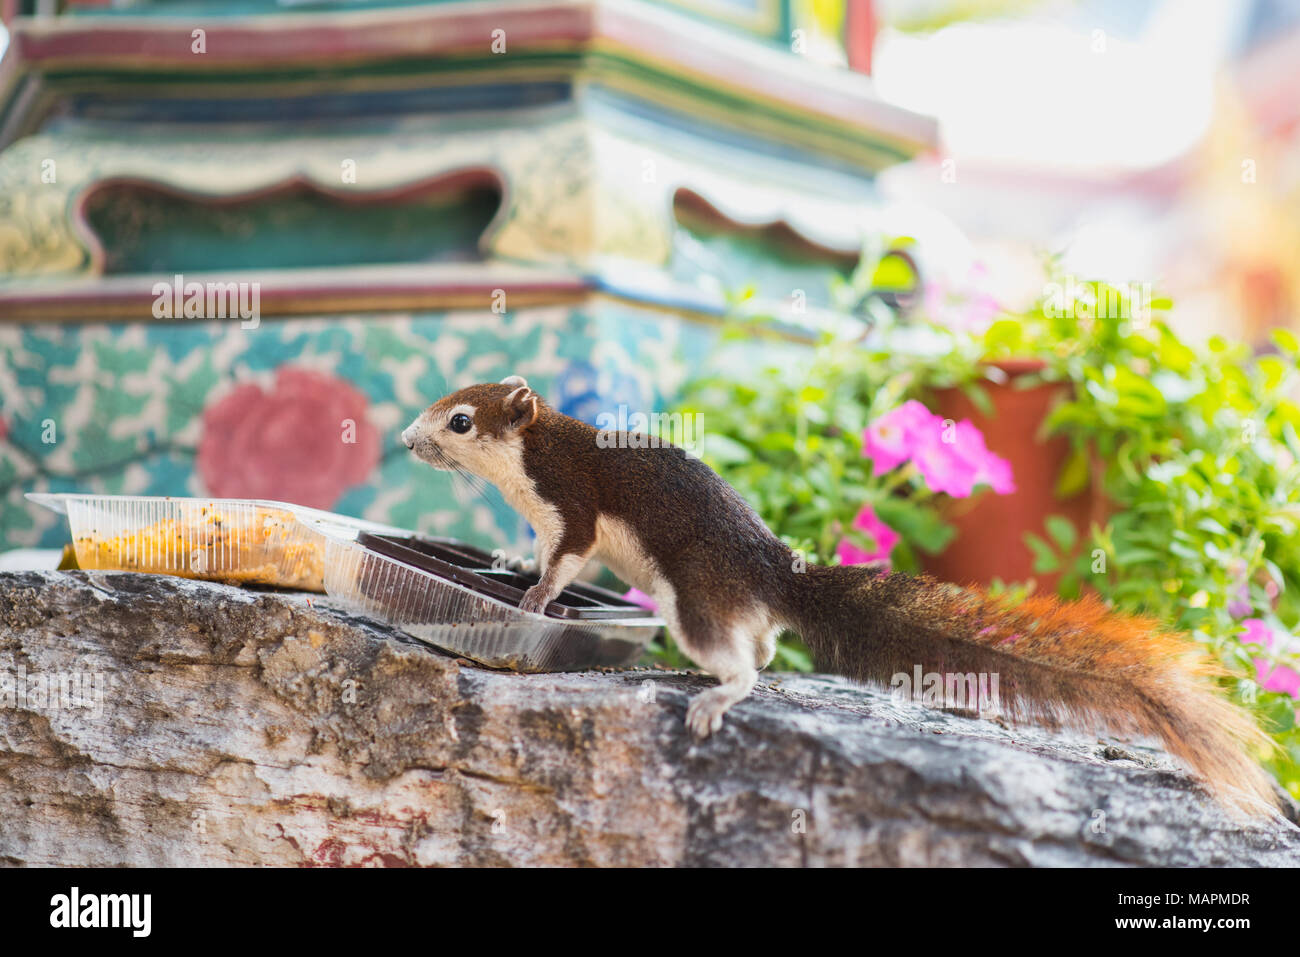 Cute squirrel eats from plastic boxes. The animal lives outdoors on Wat Pho Buddhist temple's territory in Bangkok, Thailand - Stock Image